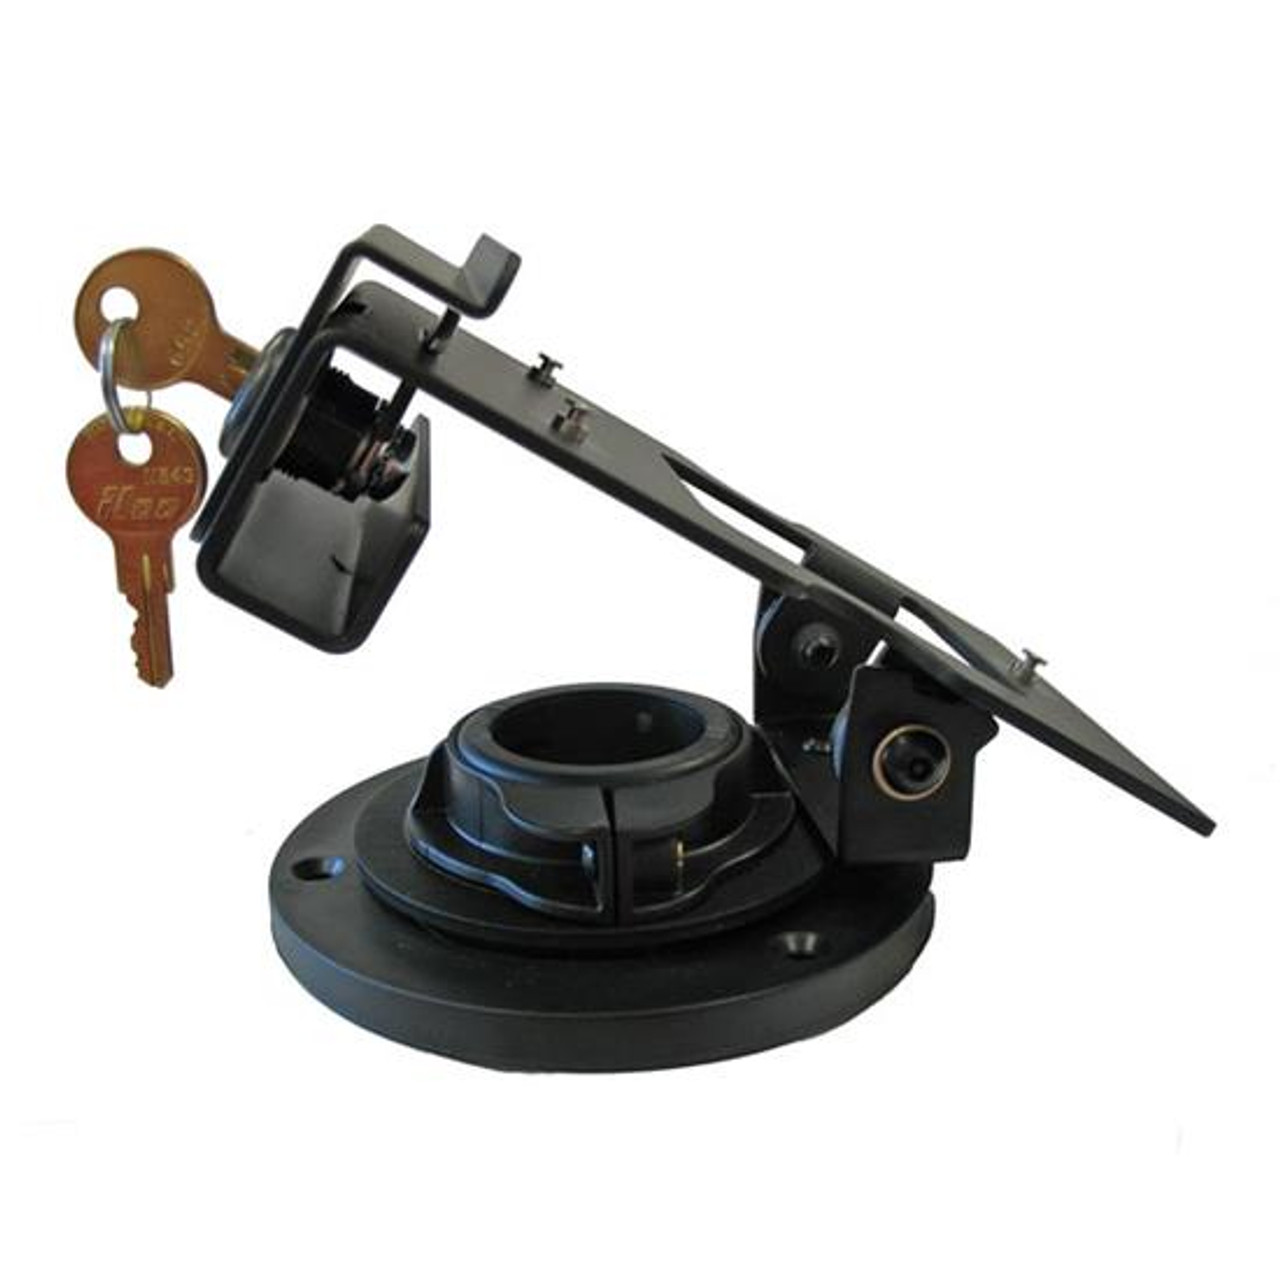 Swivel Stands Credit Card Stand Locking Low Profile Ingenico i6580 12 degree foot